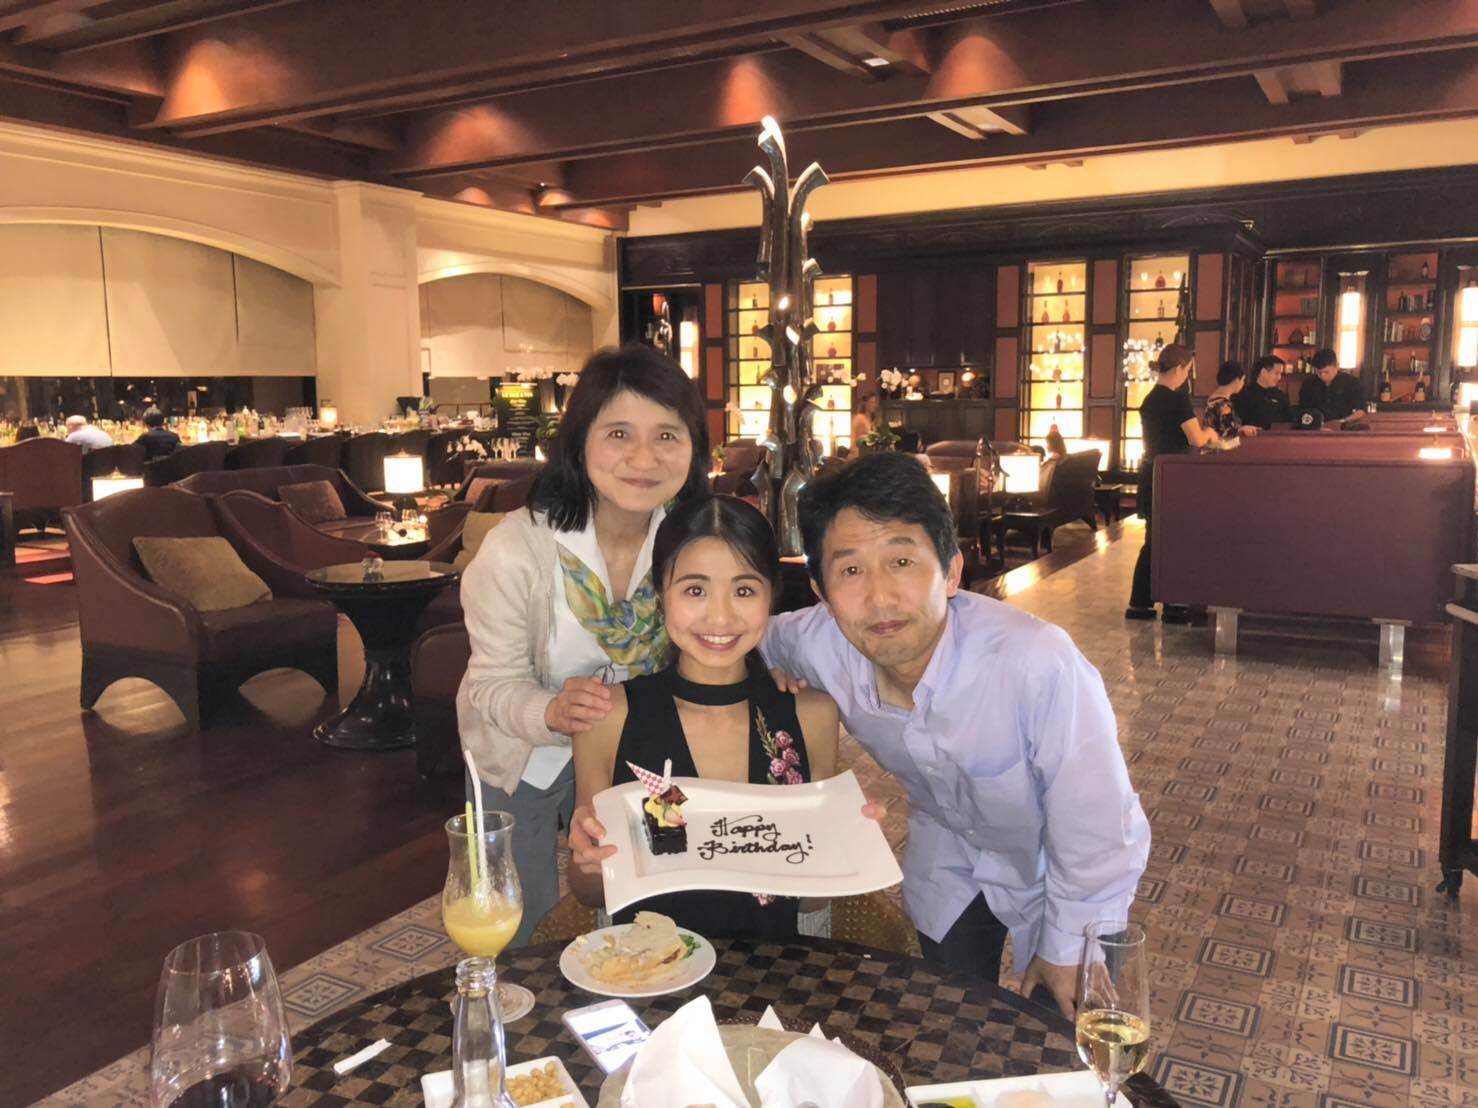 One of Sayaka's happiest moments was when her parents Masamichi and Nahoko came to Manila last October to watch her in  Le Corsaire  and to celebrate her birthday.